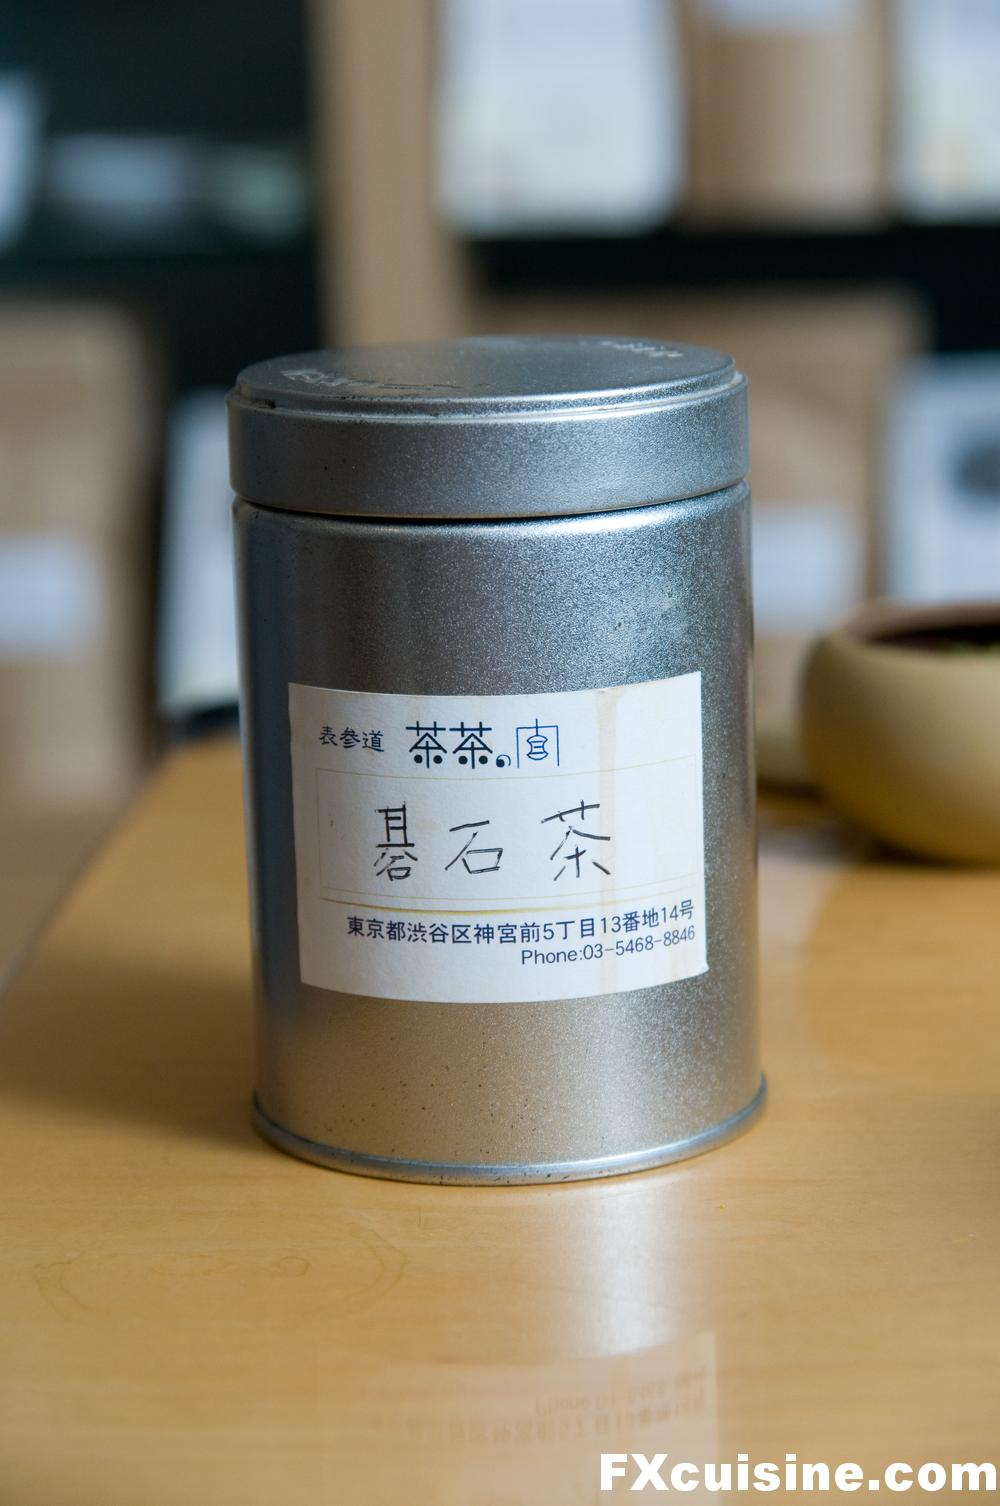 "Back to article '<p><a href=""http://fxcuisine.com/zoom-image.asp?image=http://images.fxcuisine.com/blogimages/japan/tokyo-green-tea/japanese-green-tea-tokyo-06-1000.jpg&t=%%t%%""><img src=""http://images.fxcuisine.com/b'"